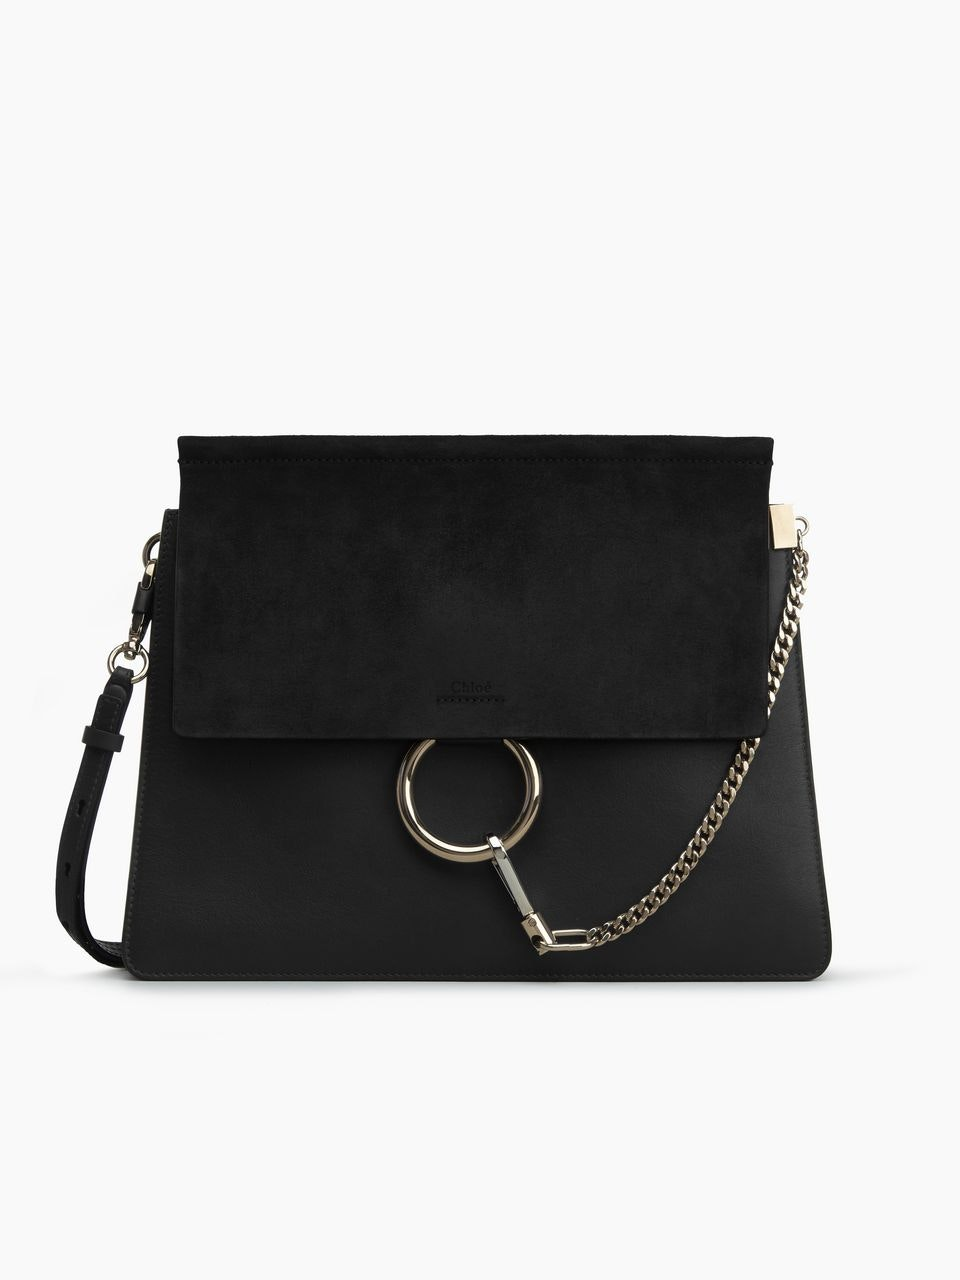 Chloe Shoulder Bag Faye Black